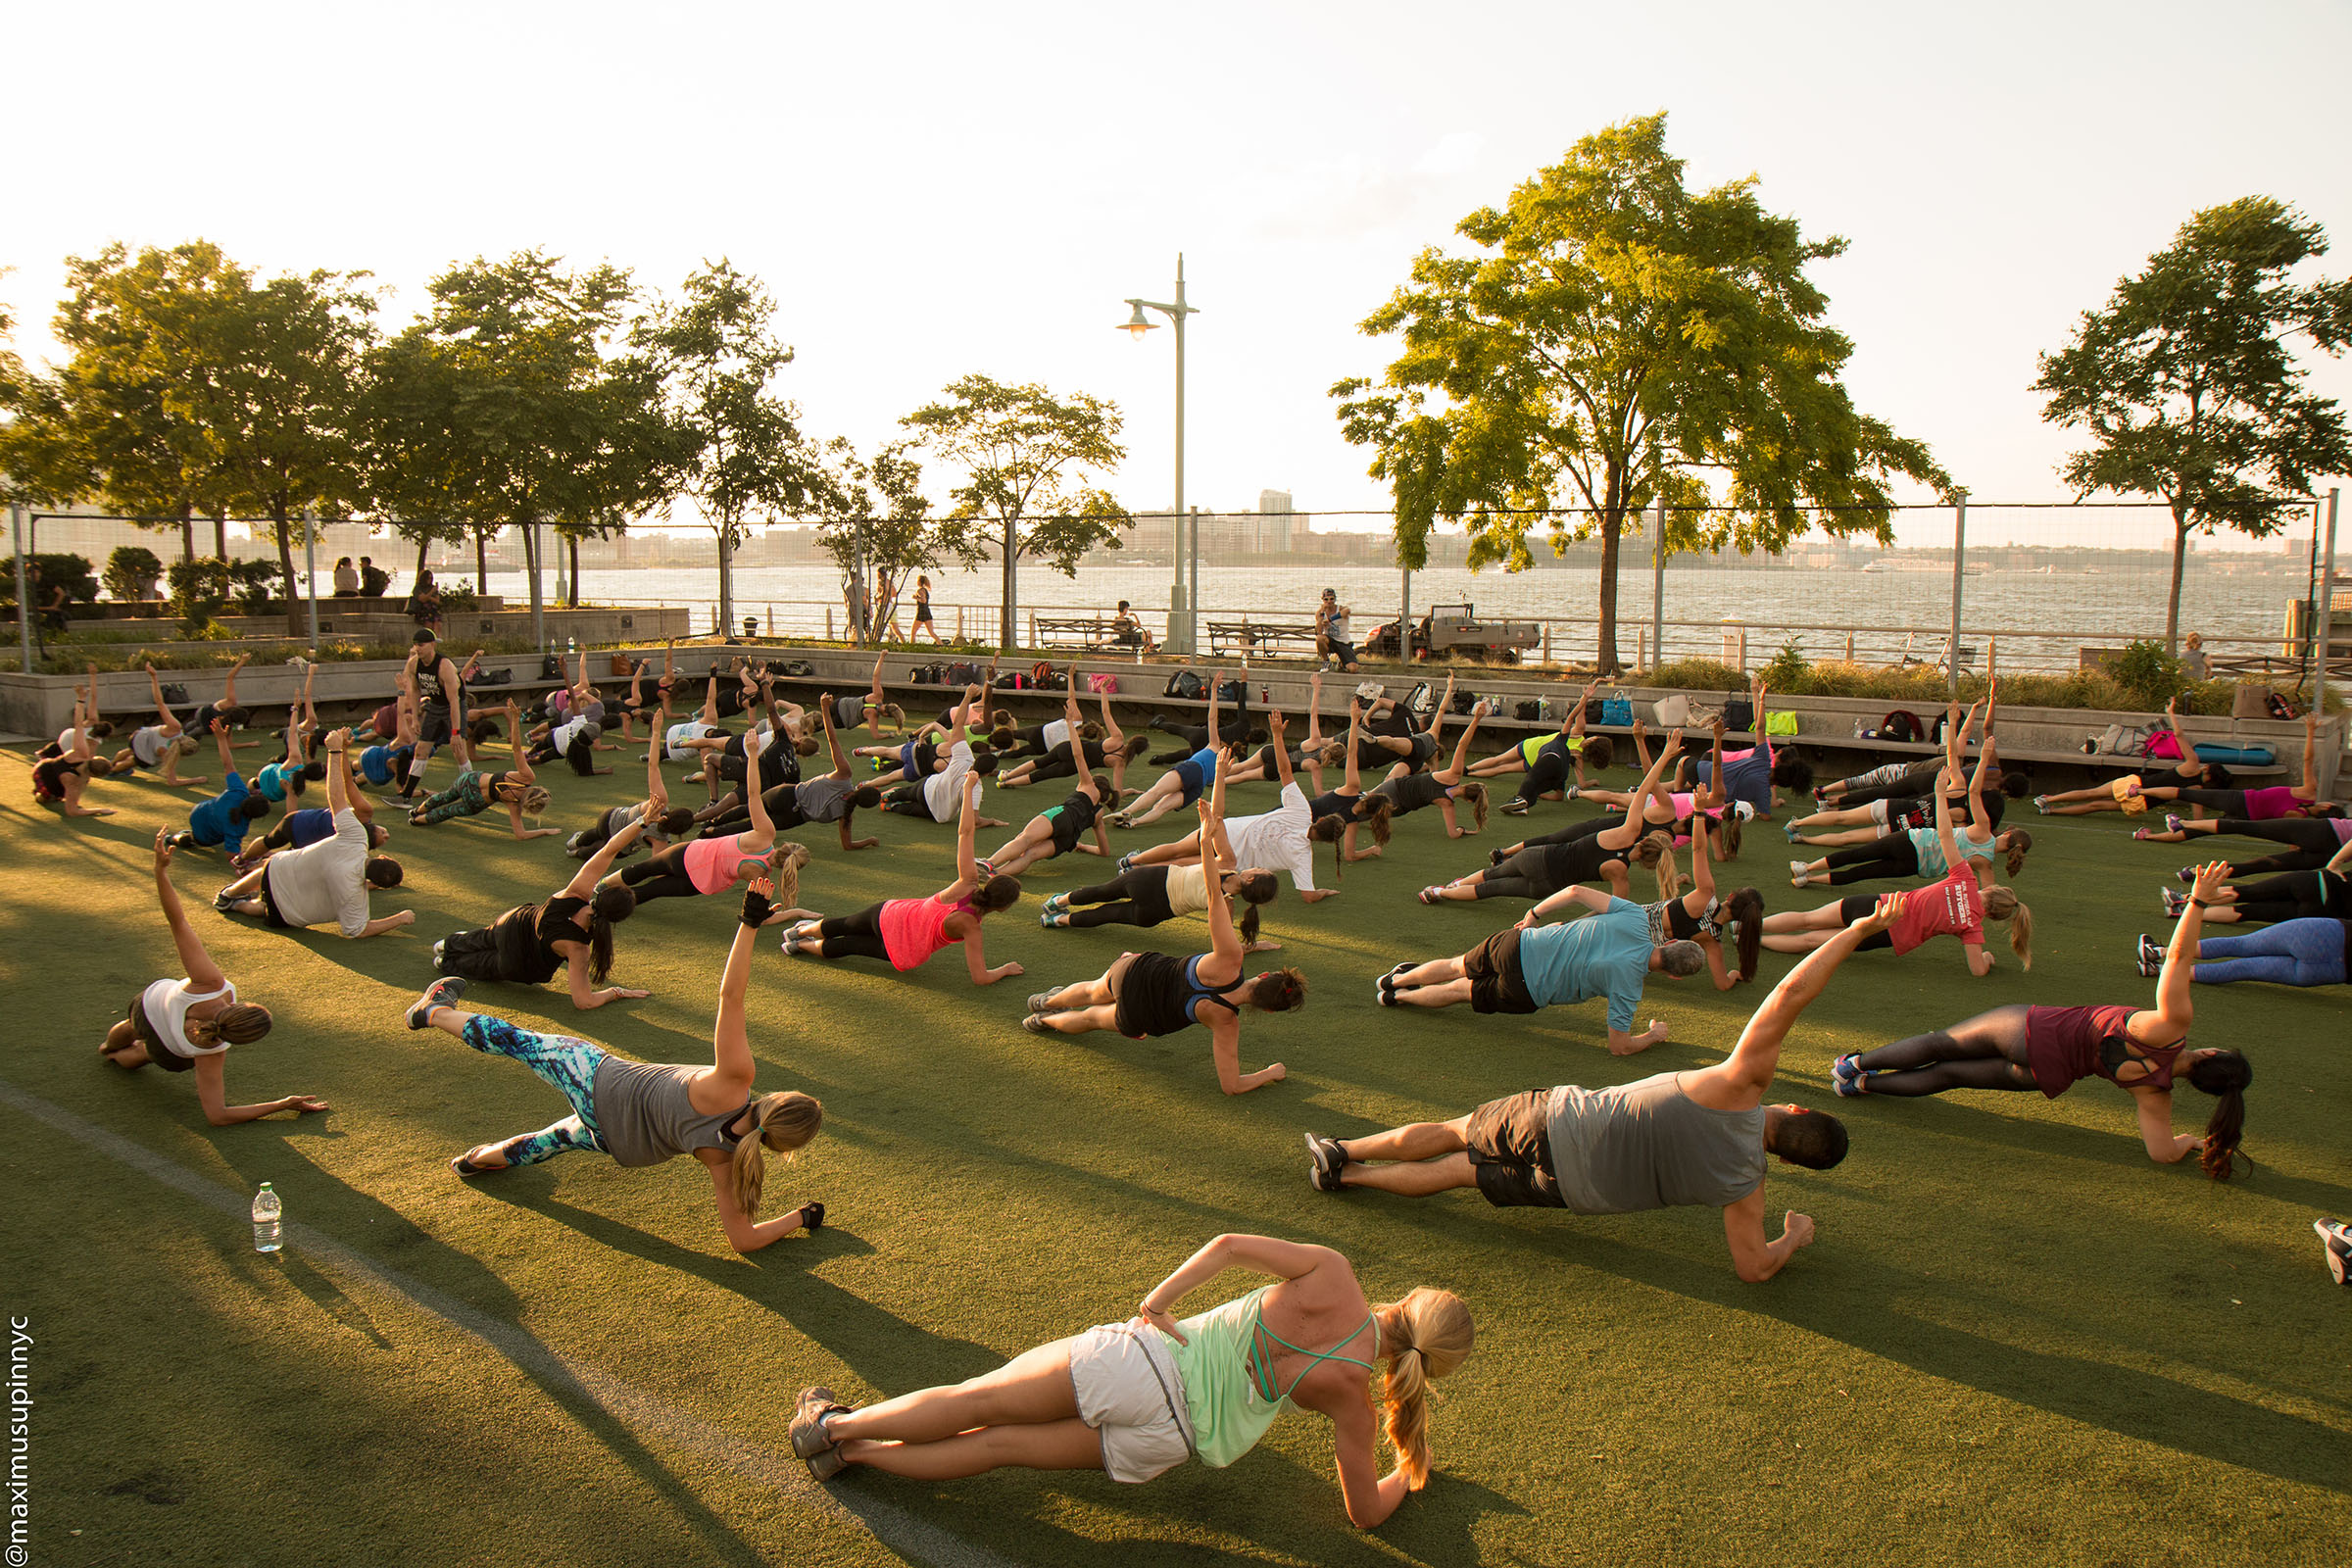 A large group of yoga enthusiasts begin on the lawn at Pier 25